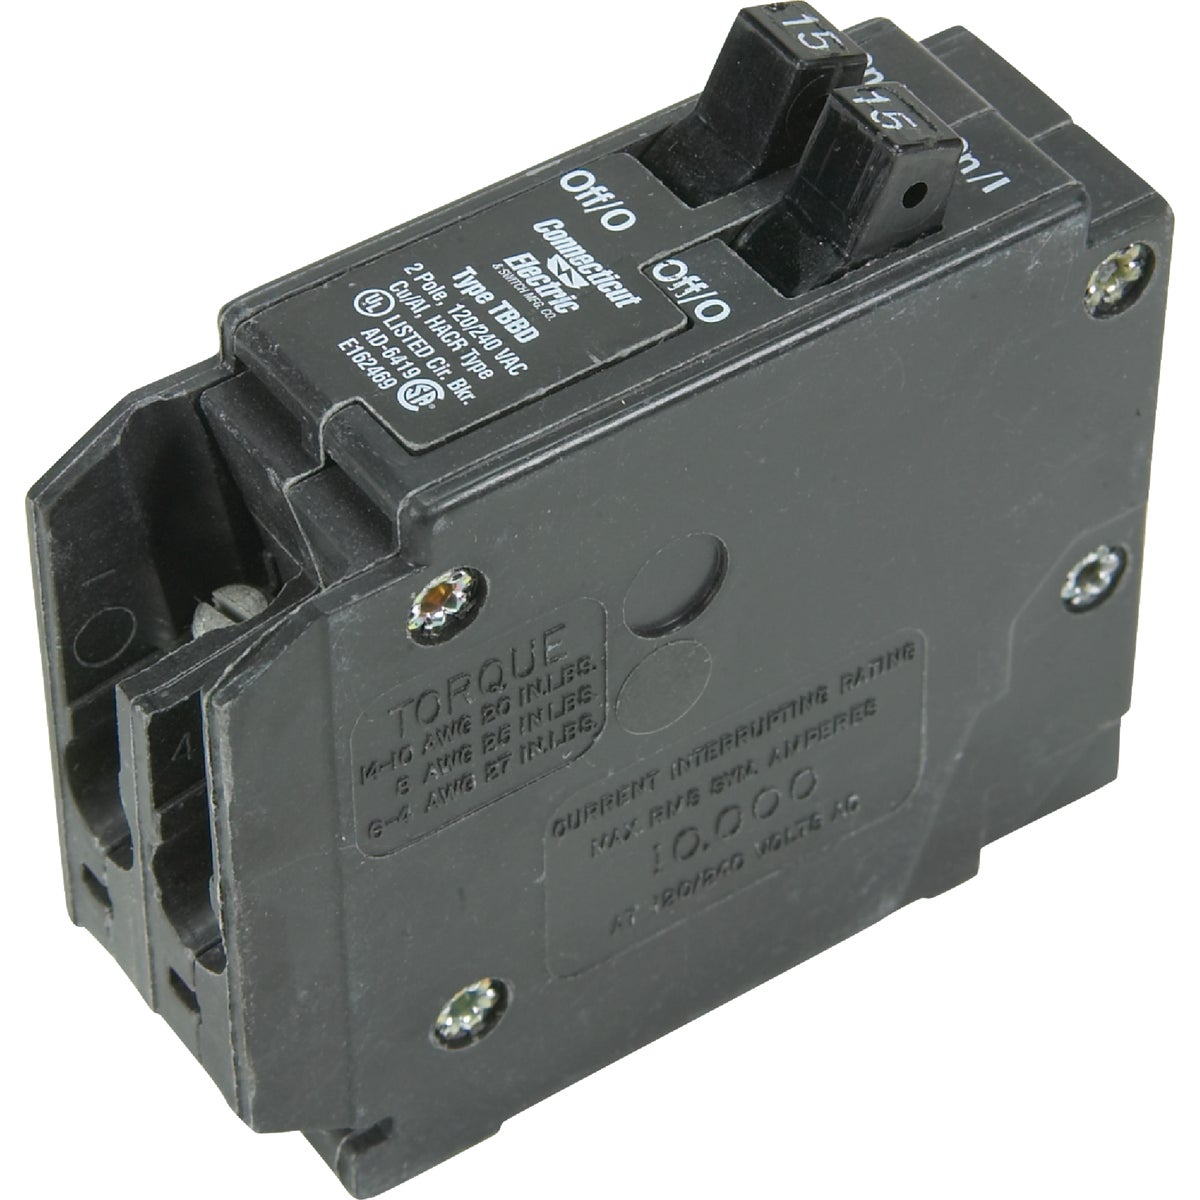 15A TWIN CIRCUIT BREAKER - ICBQ1515 by Connecticut Electric